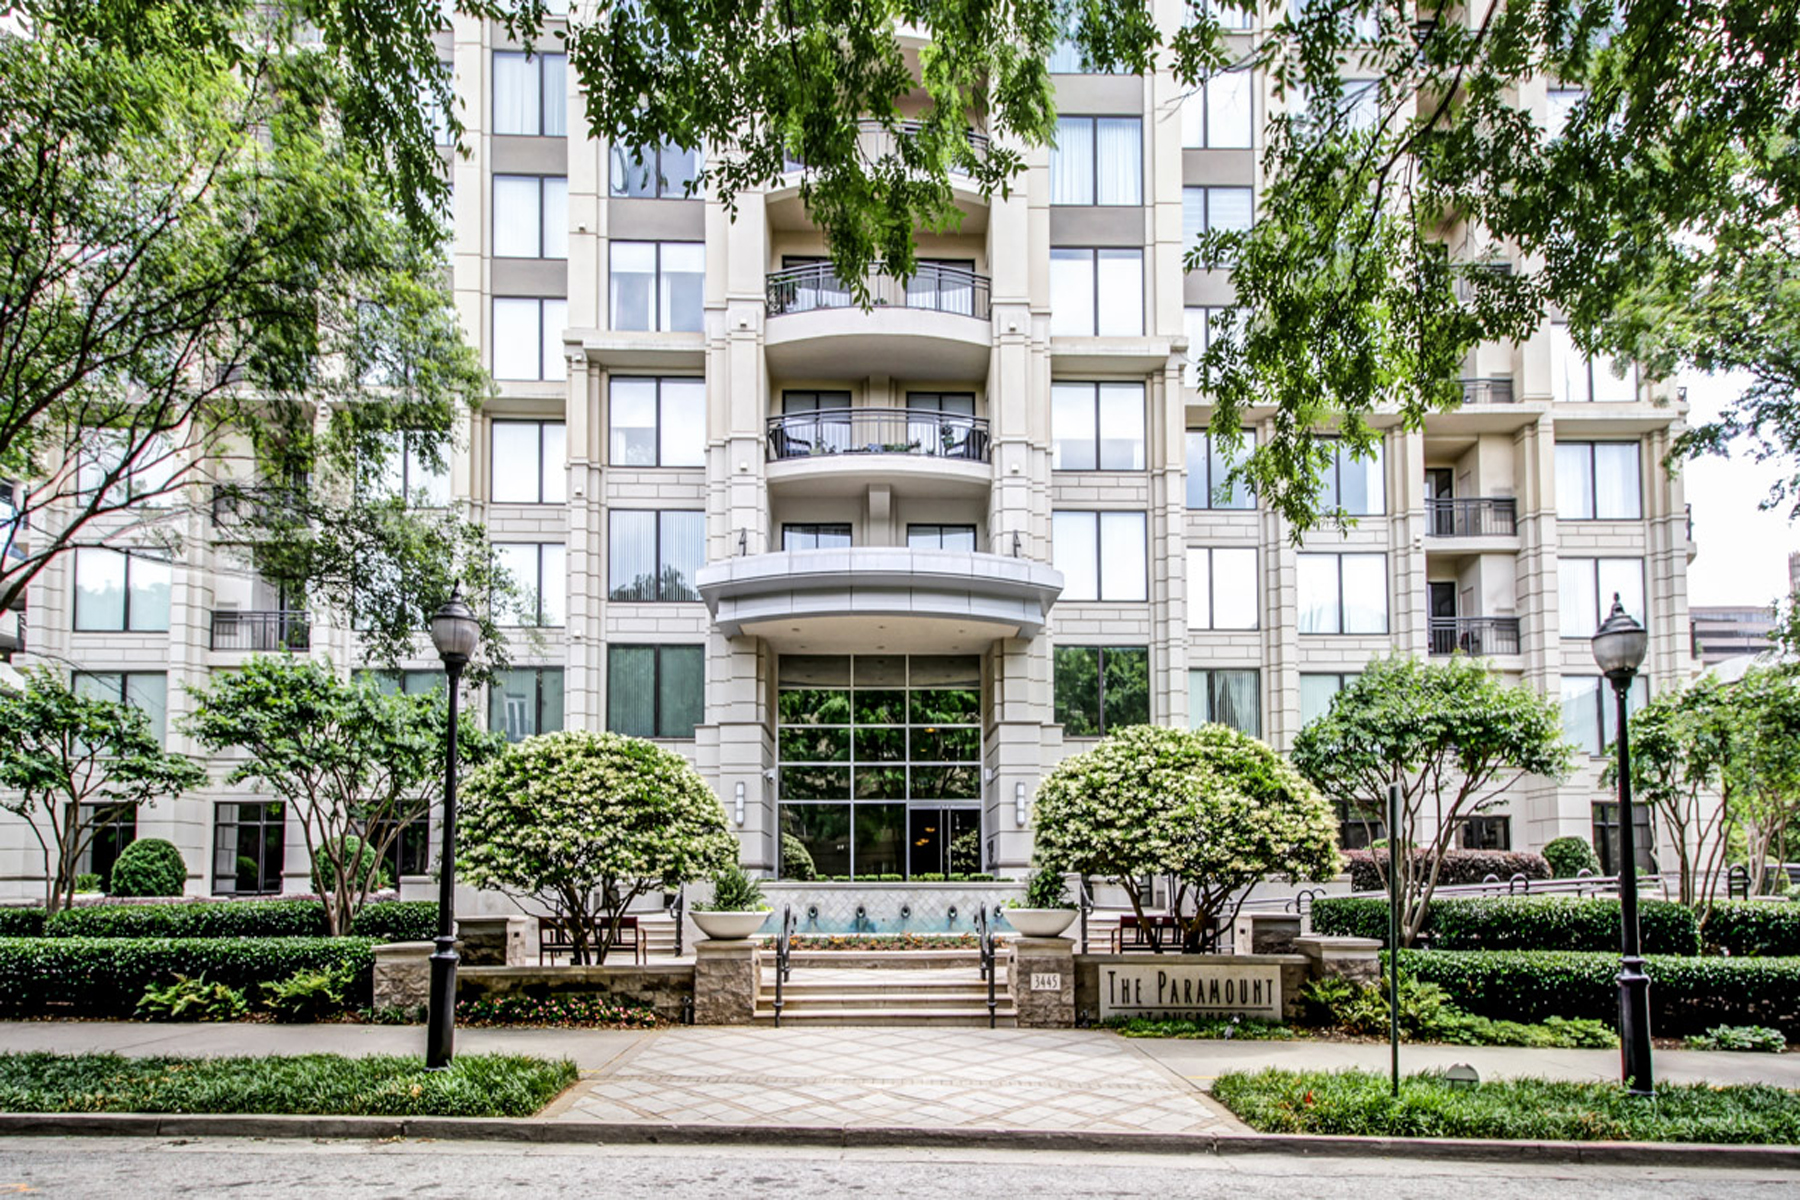 Appartement en copropriété pour l Vente à Charming Condo In The City 3445 Stratford Road NE Unit 503 Atlanta, Georgia, 30326 États-Unis